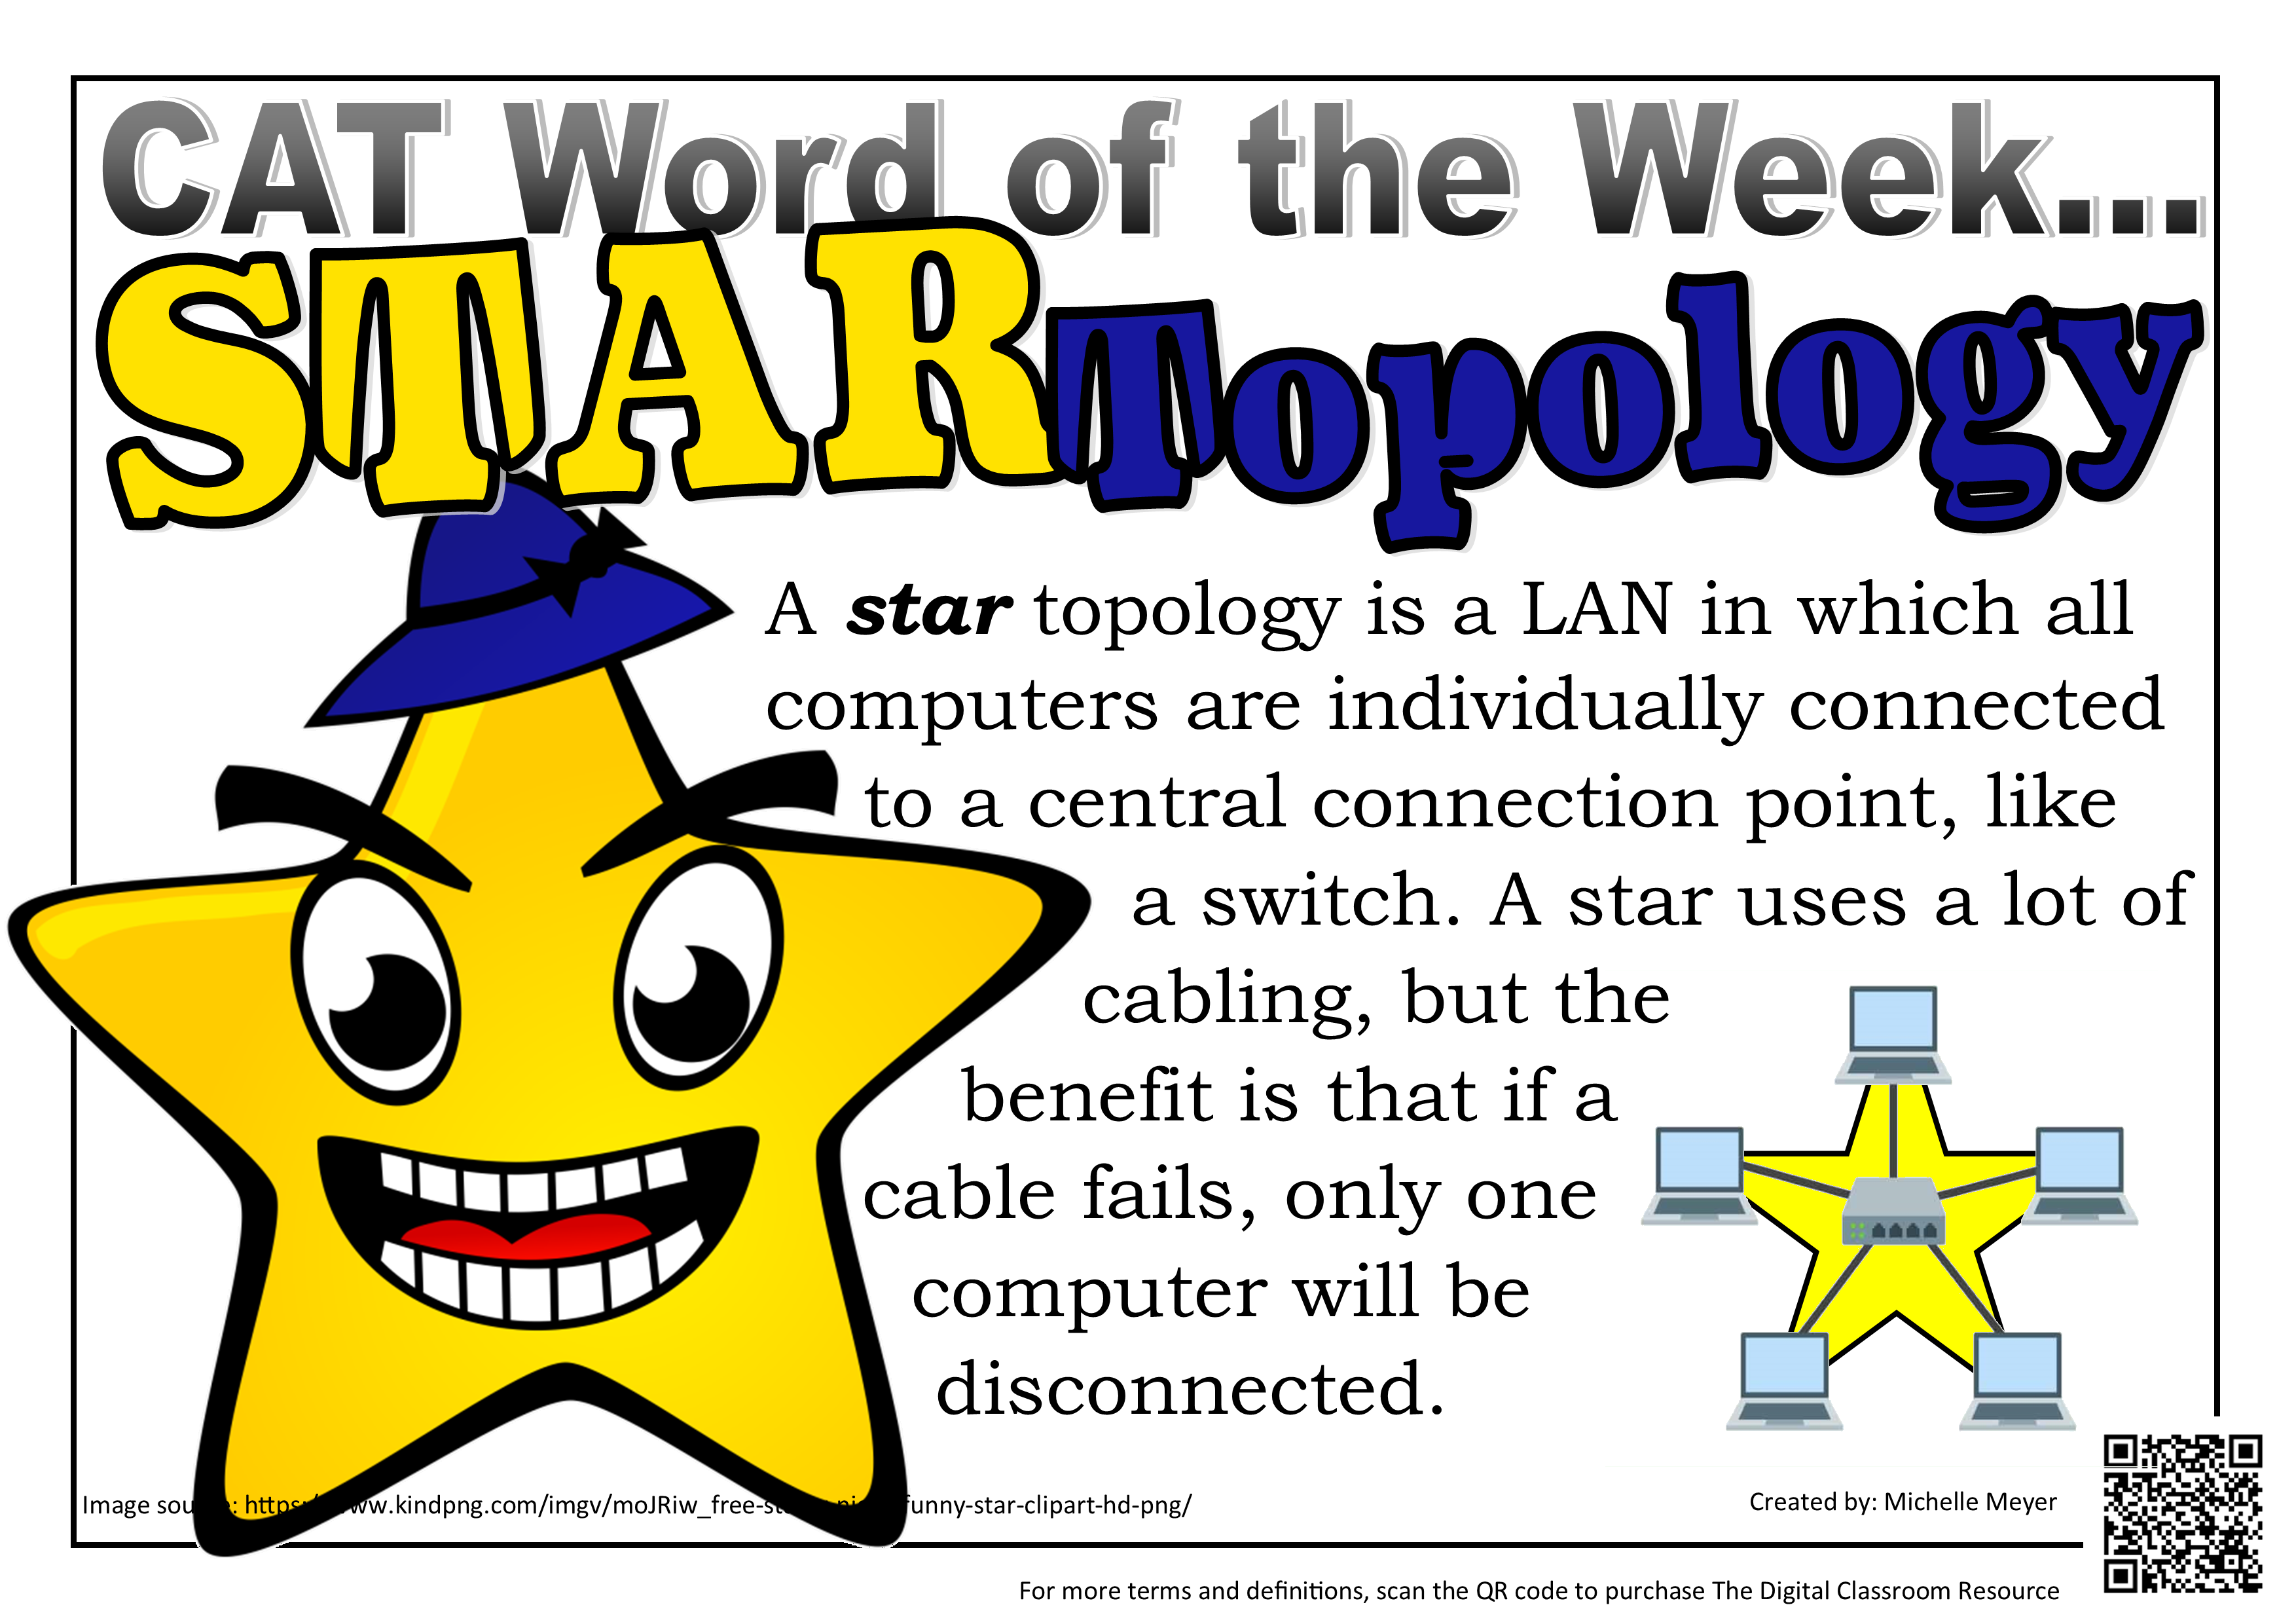 61 Star Topology